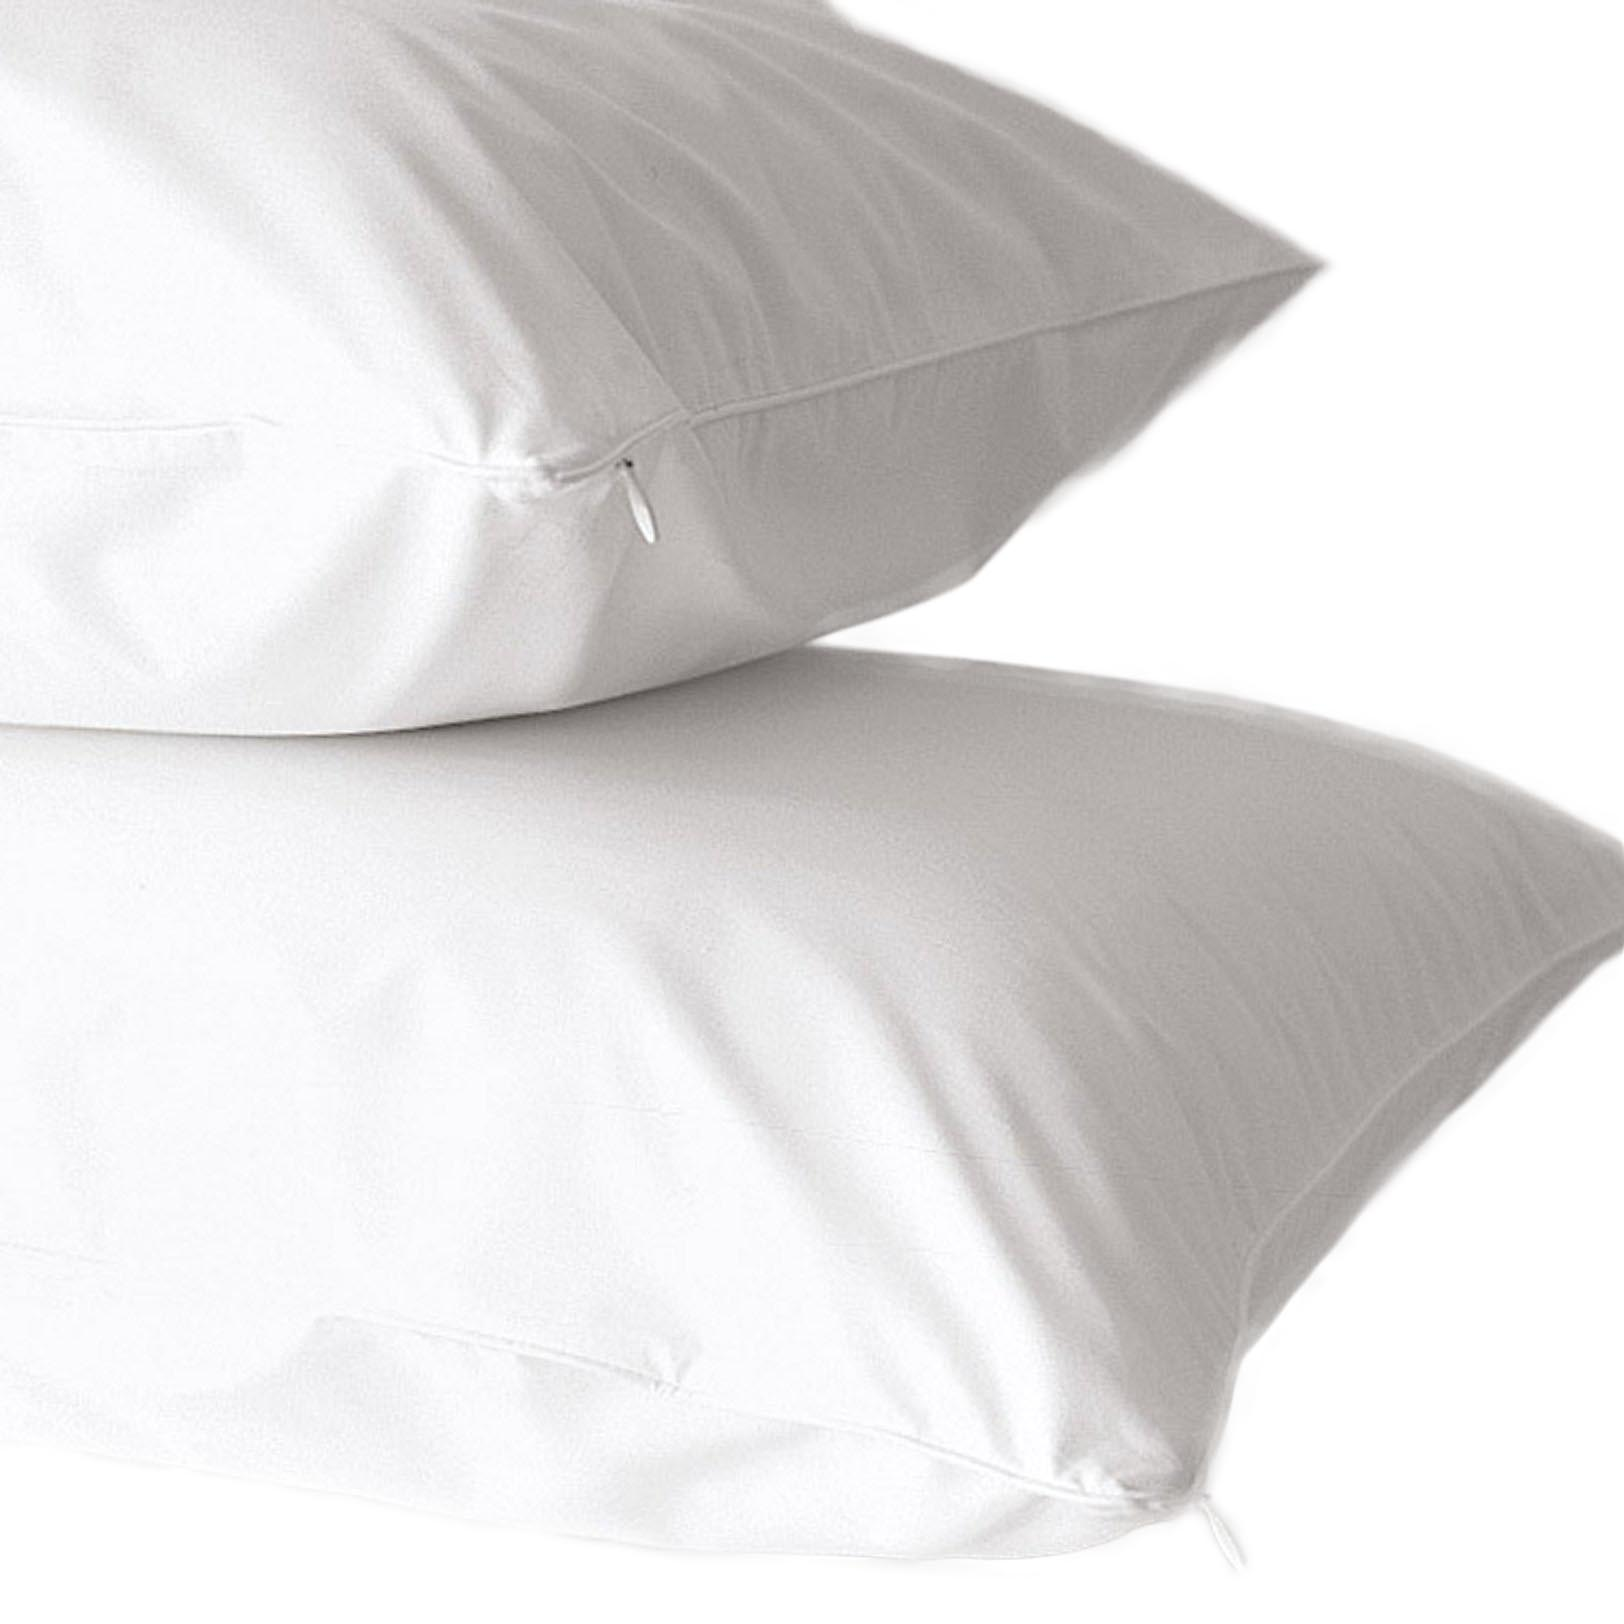 2-Pack 100% Cotton 400 Thread Count Allergy Pillow Protectors By Home Fashion Designs by Home Fashion Designs